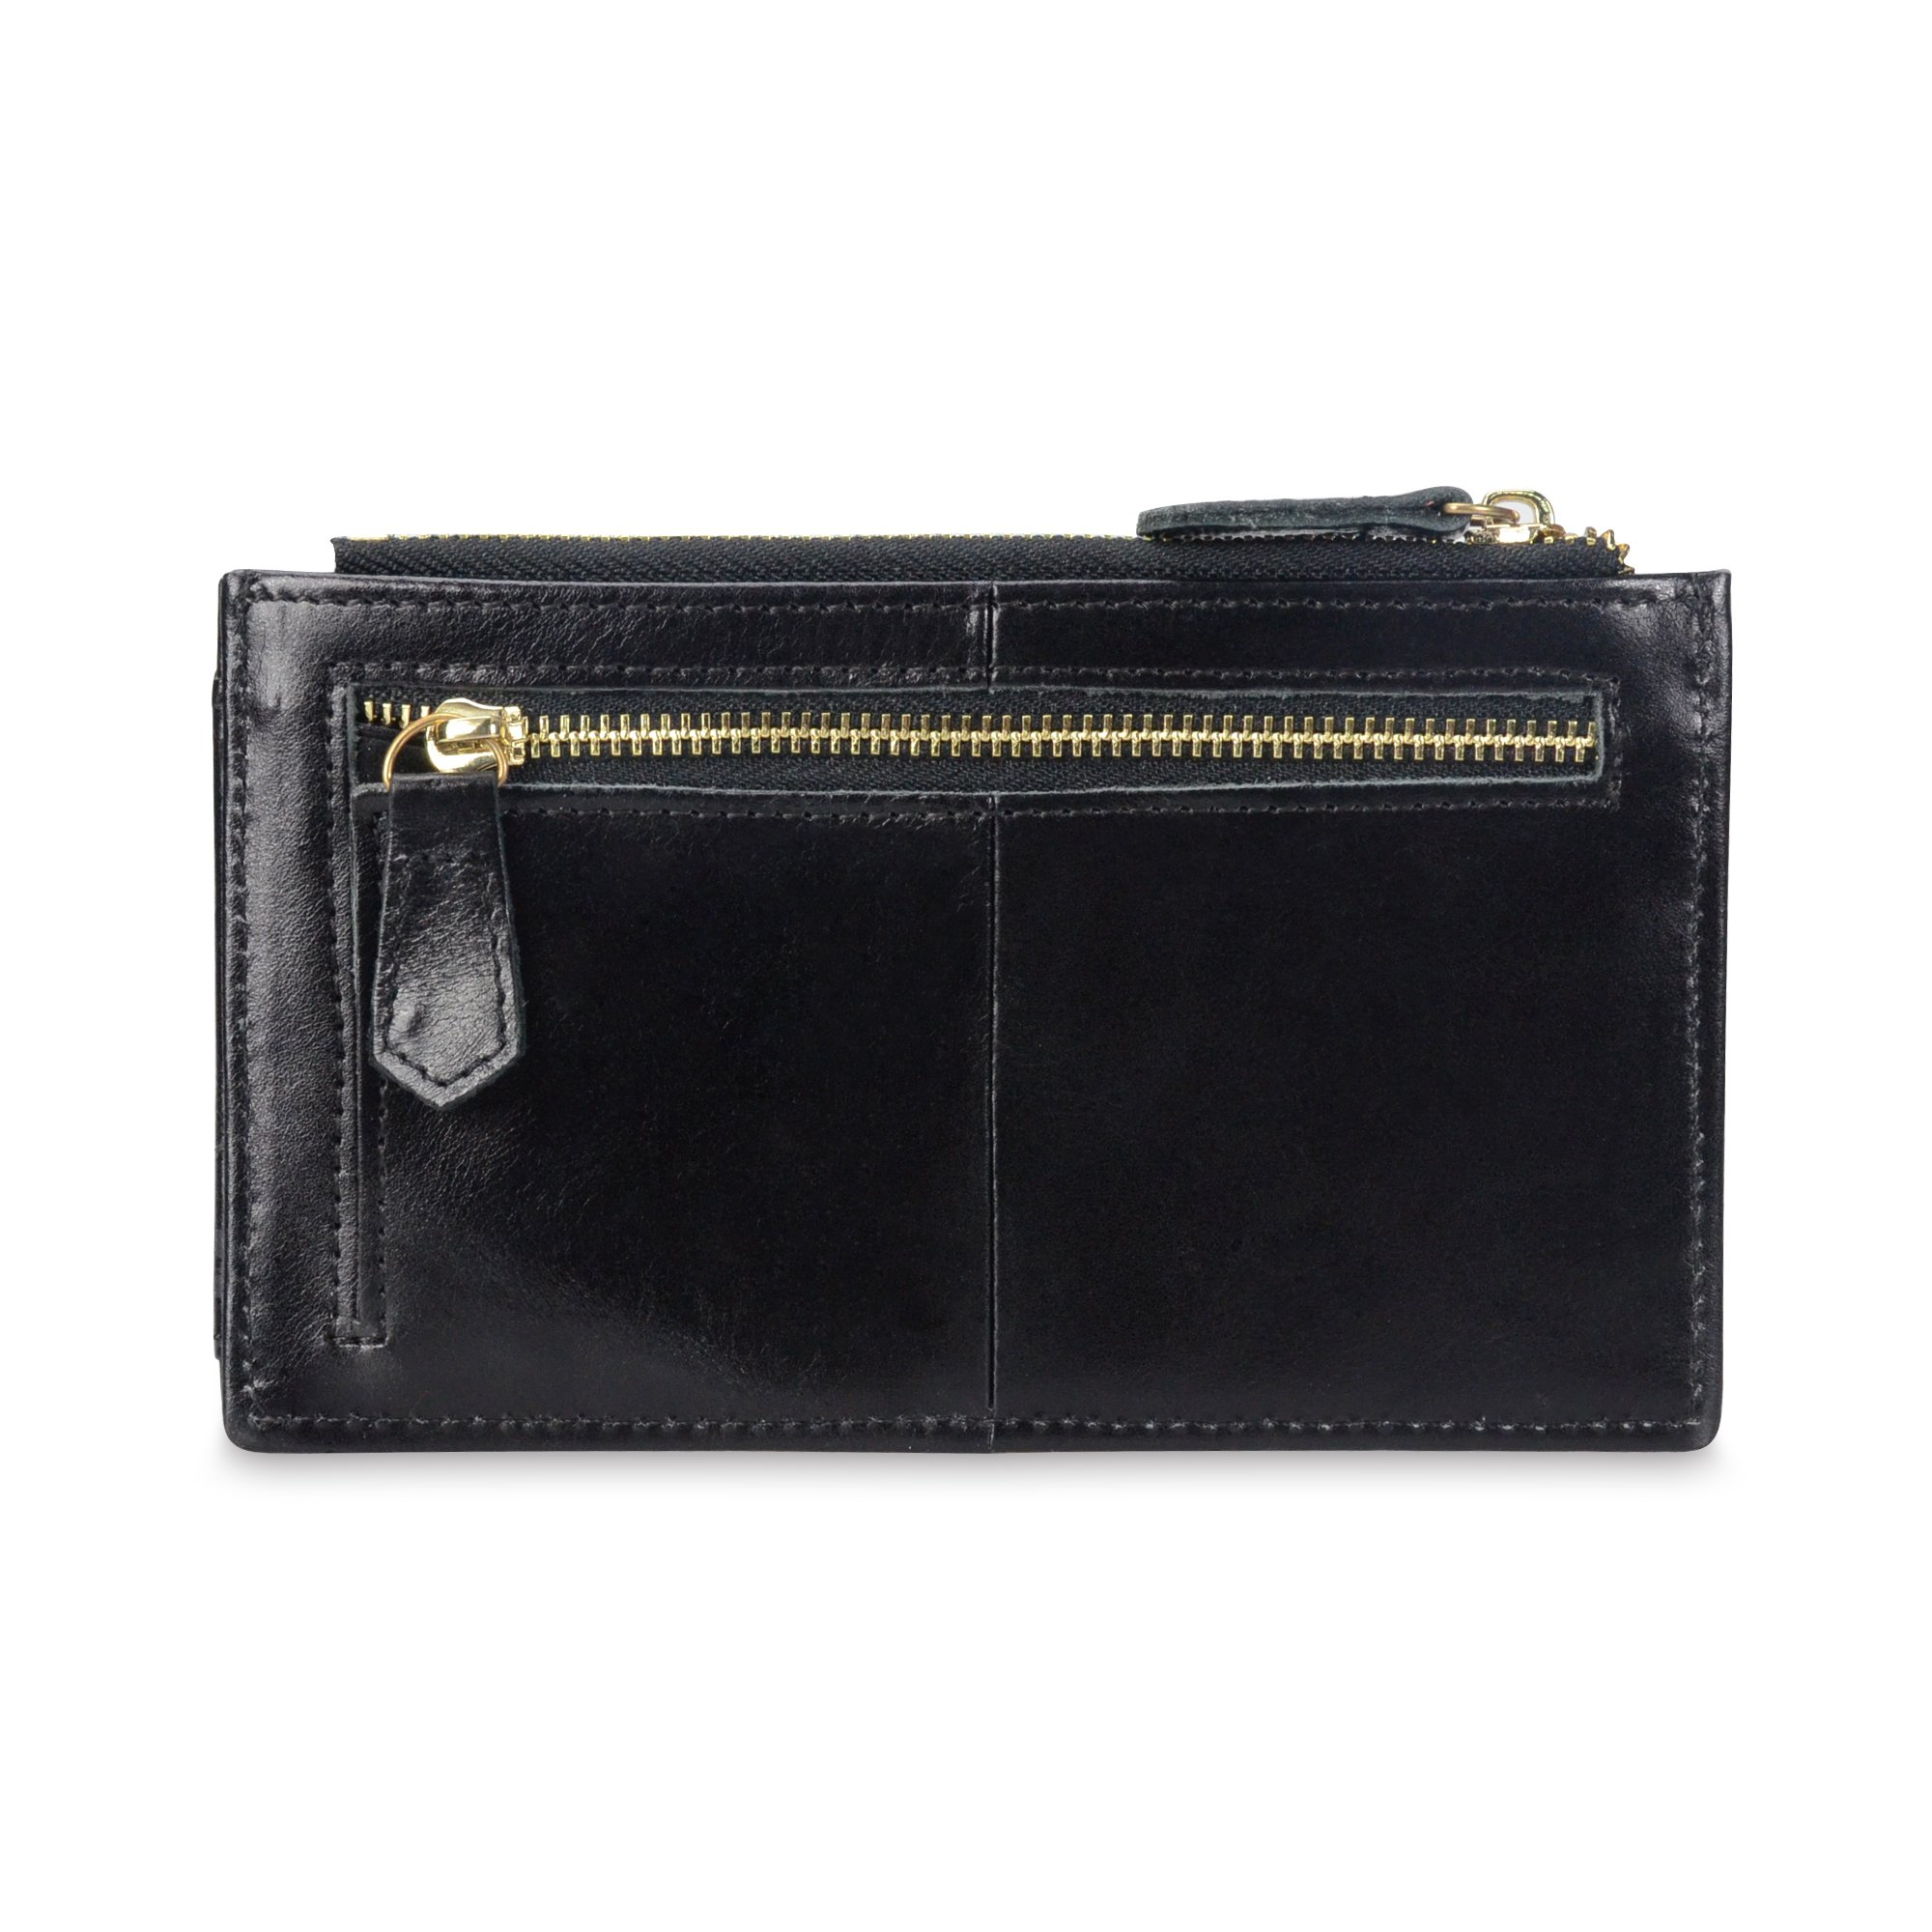 Onstro RFID Blocking Wallets for Women Genuine Leather Multi Credit Card Organizer with ID window by Onstro (Image #3)